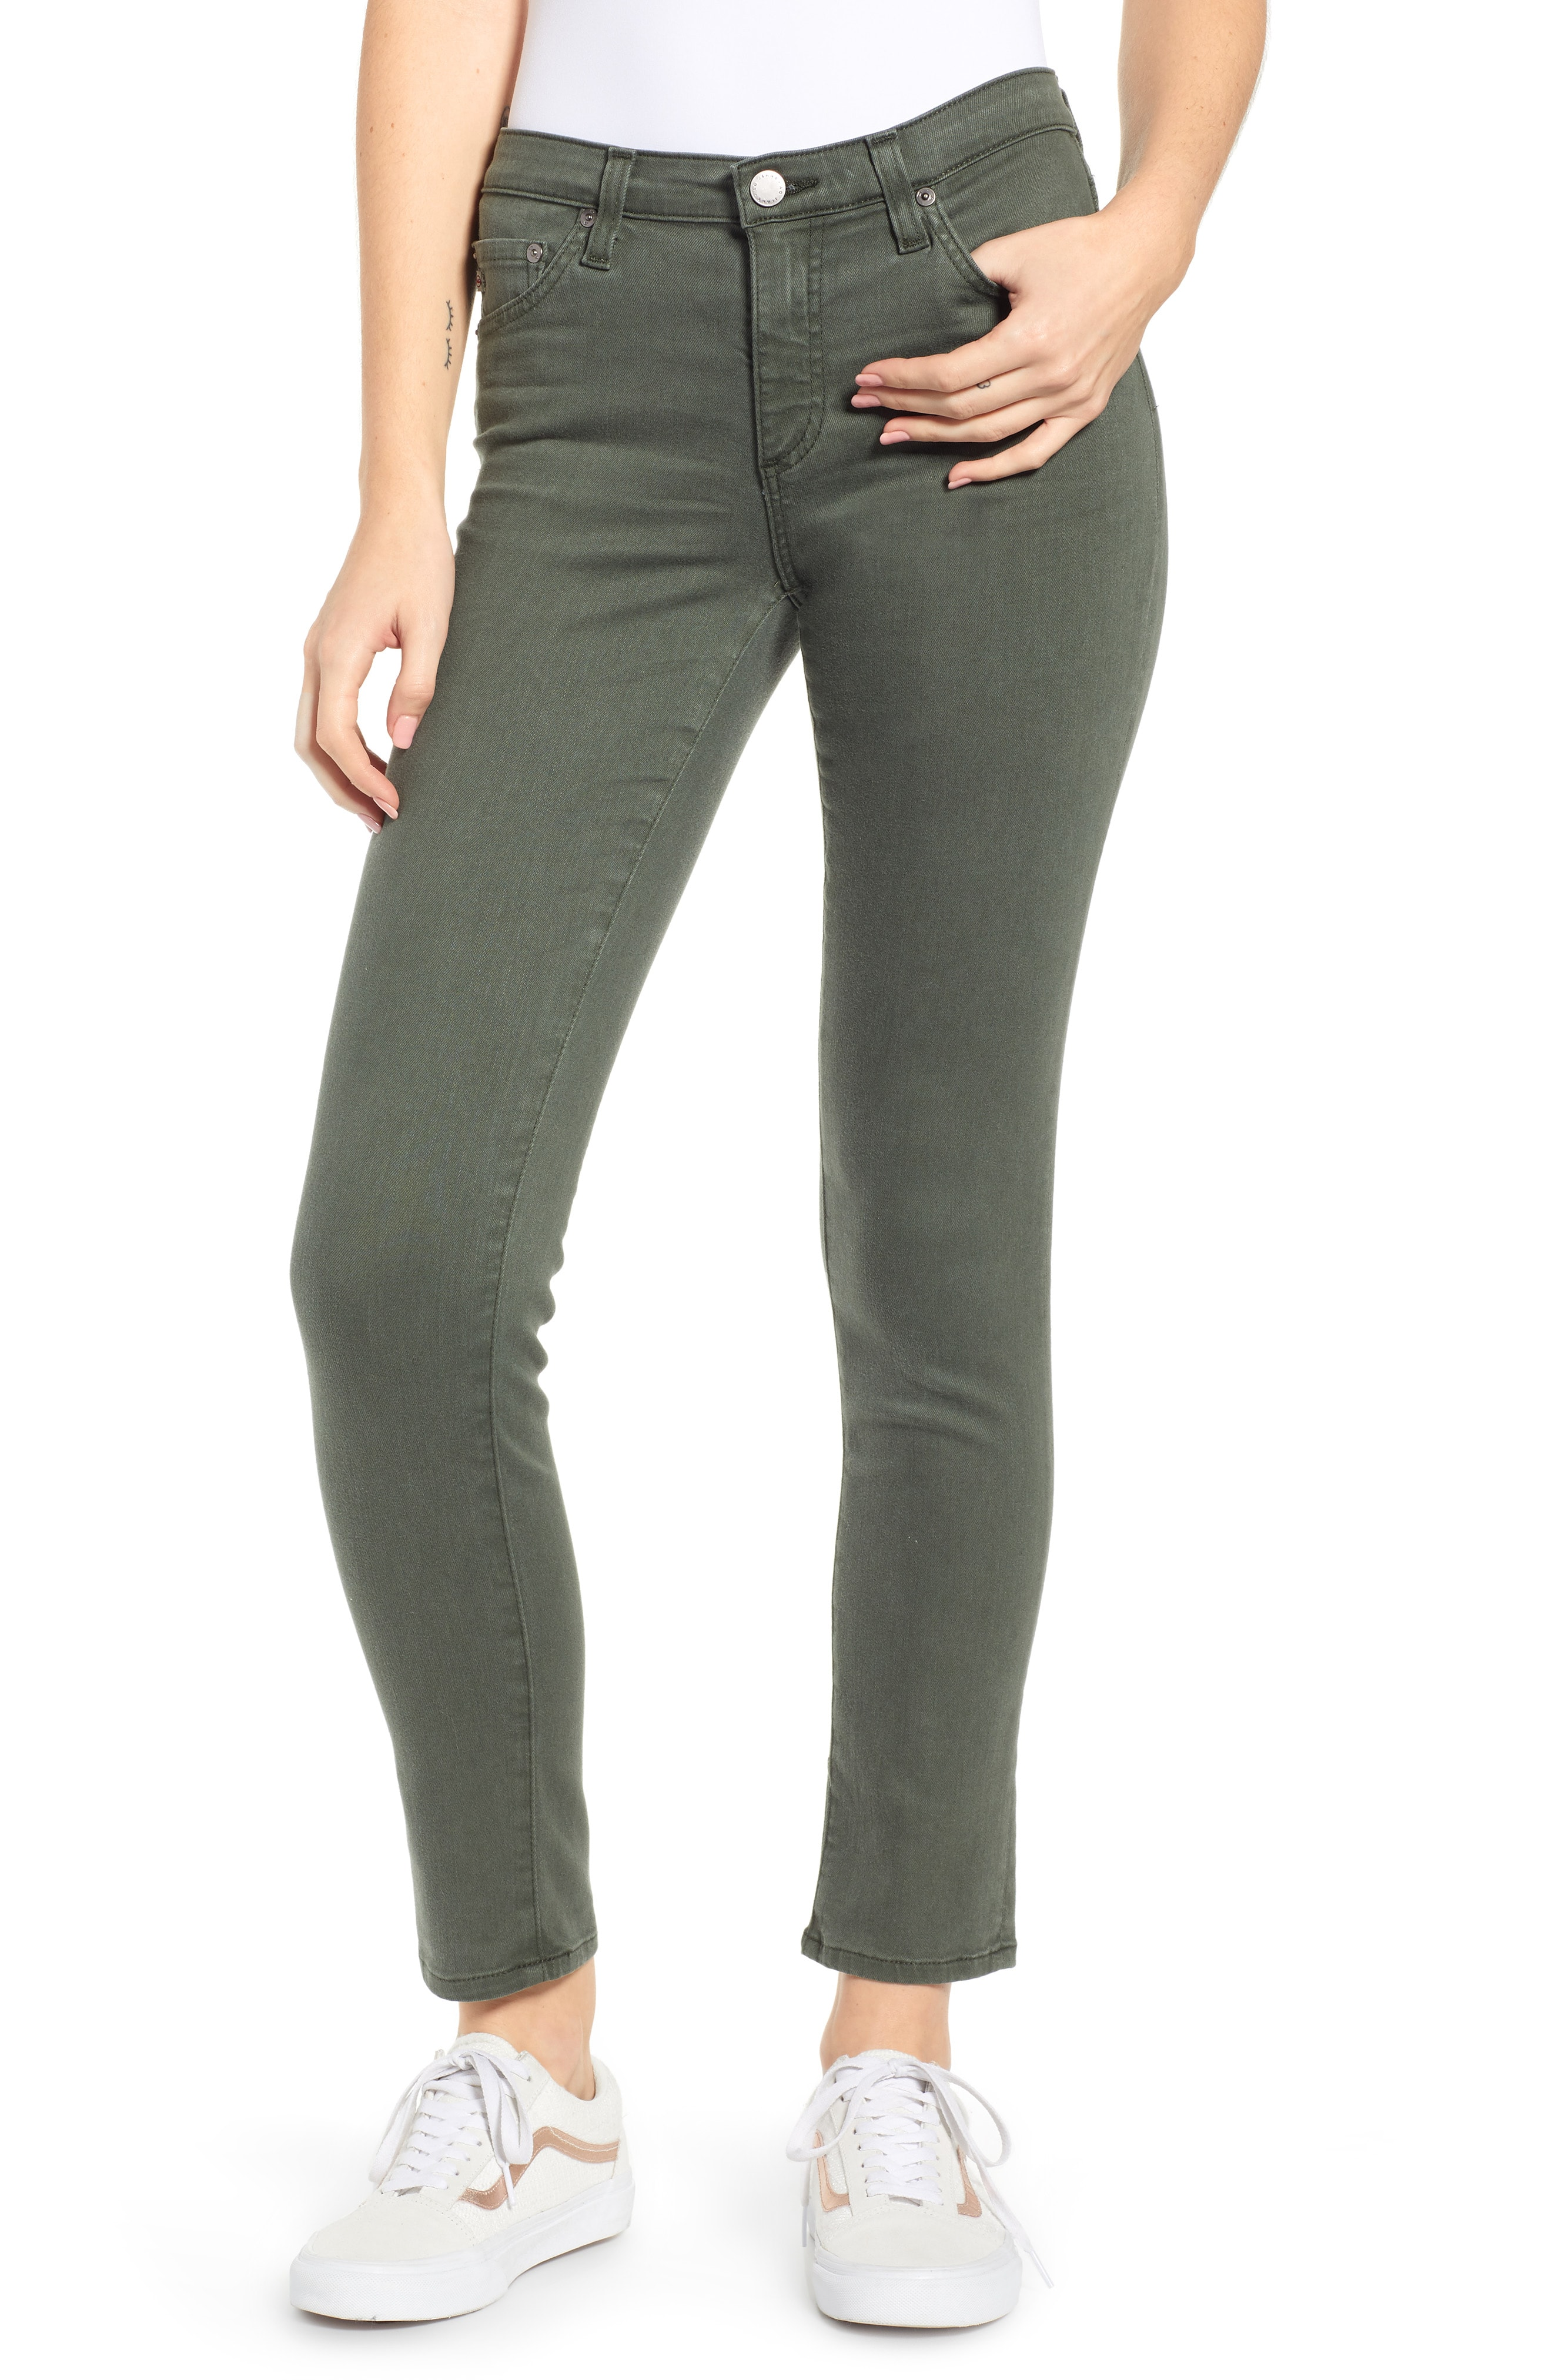 green jeans | Nordstrom